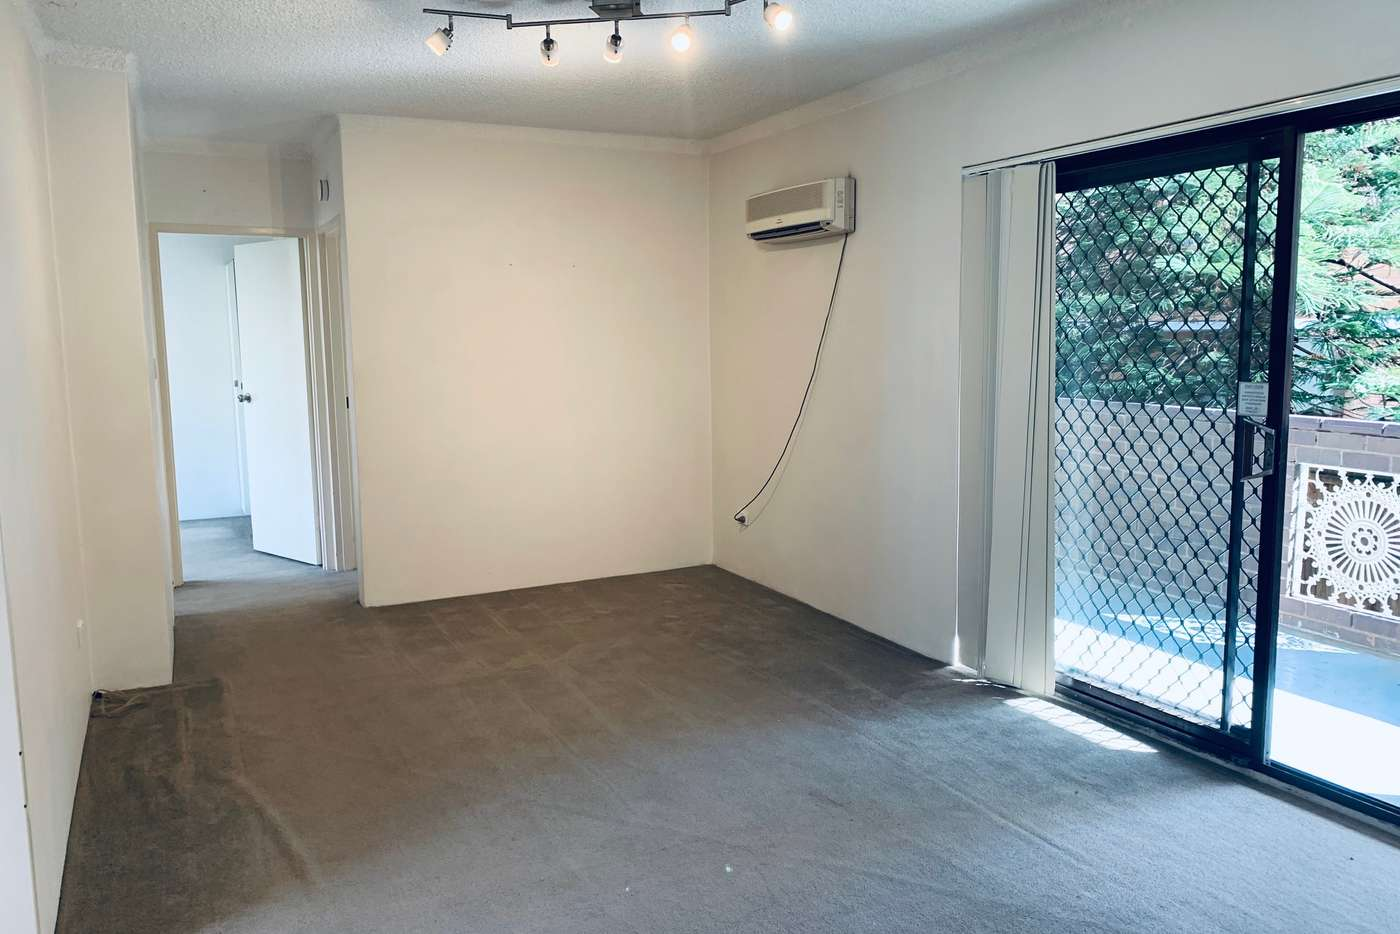 Seventh view of Homely apartment listing, 2/79 Anzac Avenue, West Ryde NSW 2114